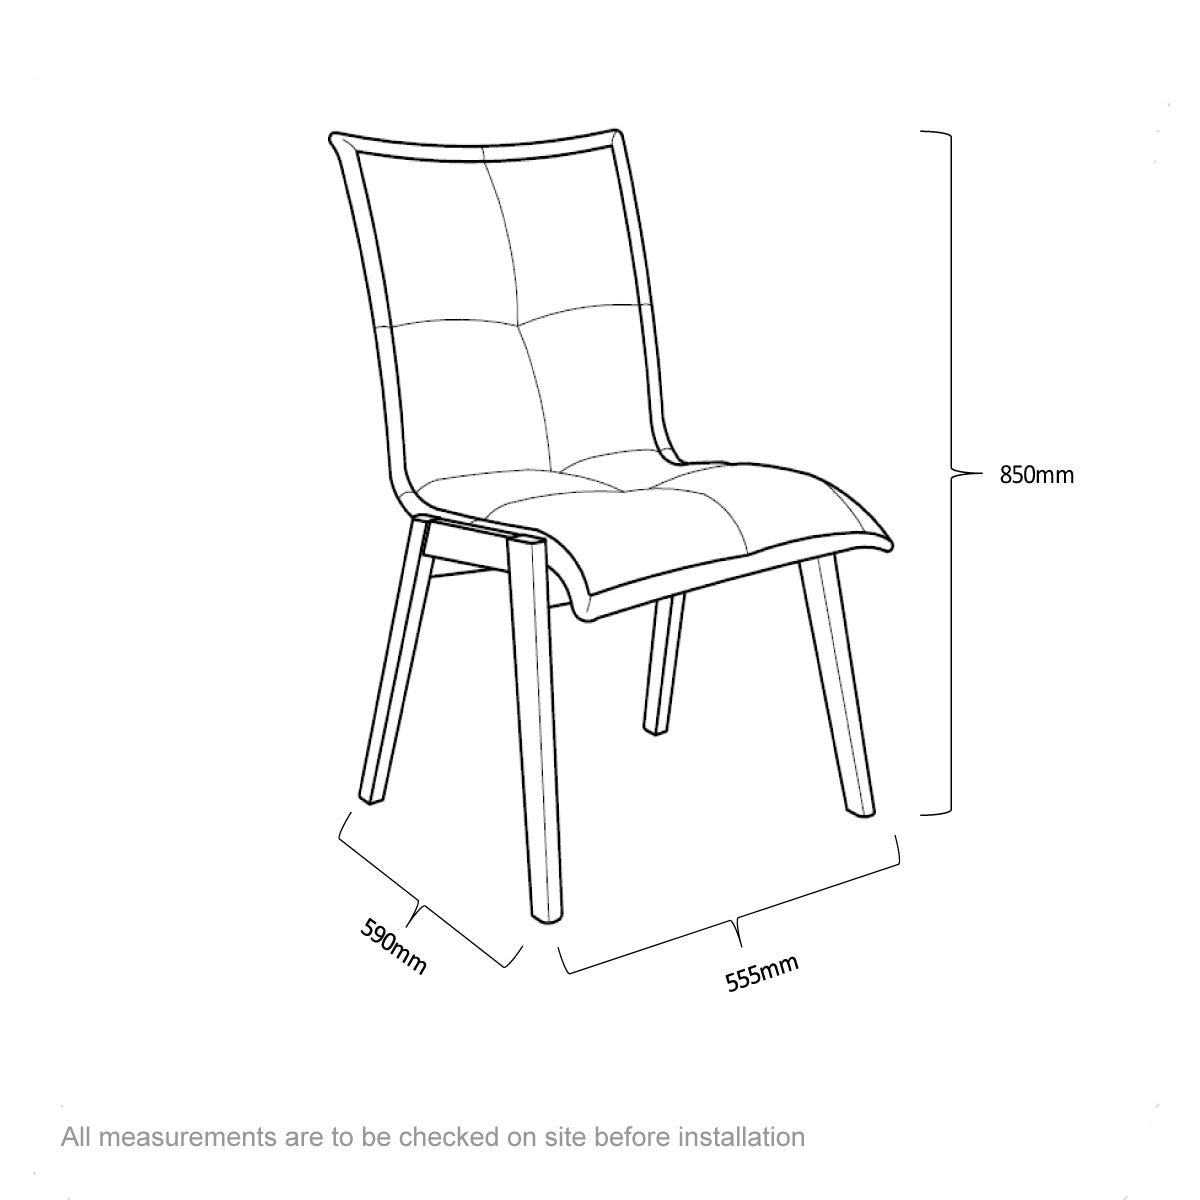 Dimensions for Hadley walnut and beige pair of dining chairs